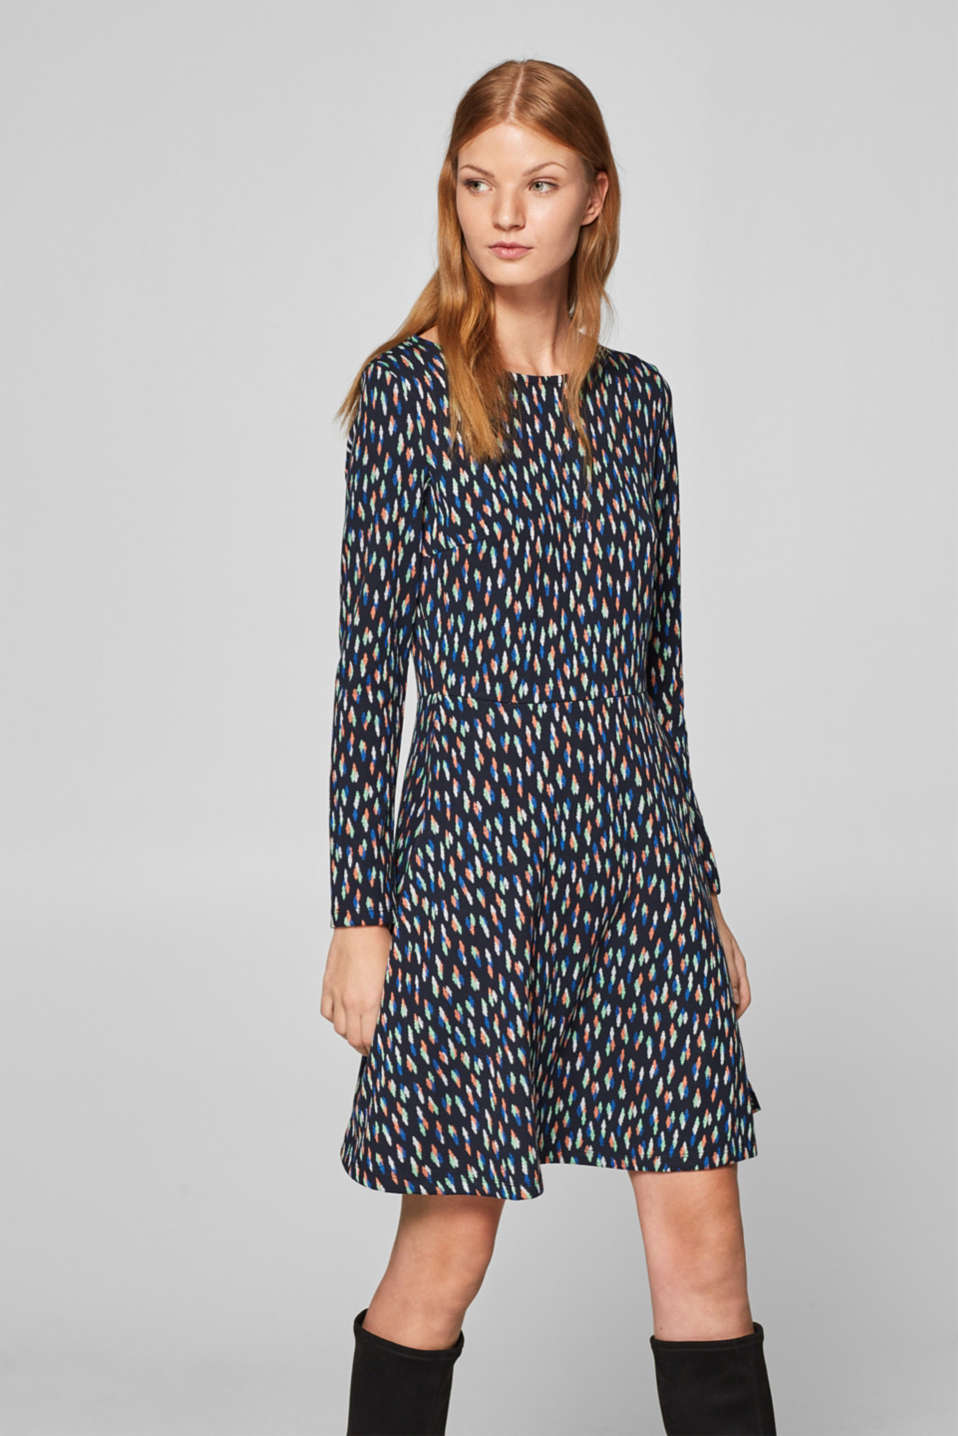 Esprit - Jacquard pattern jersey dress